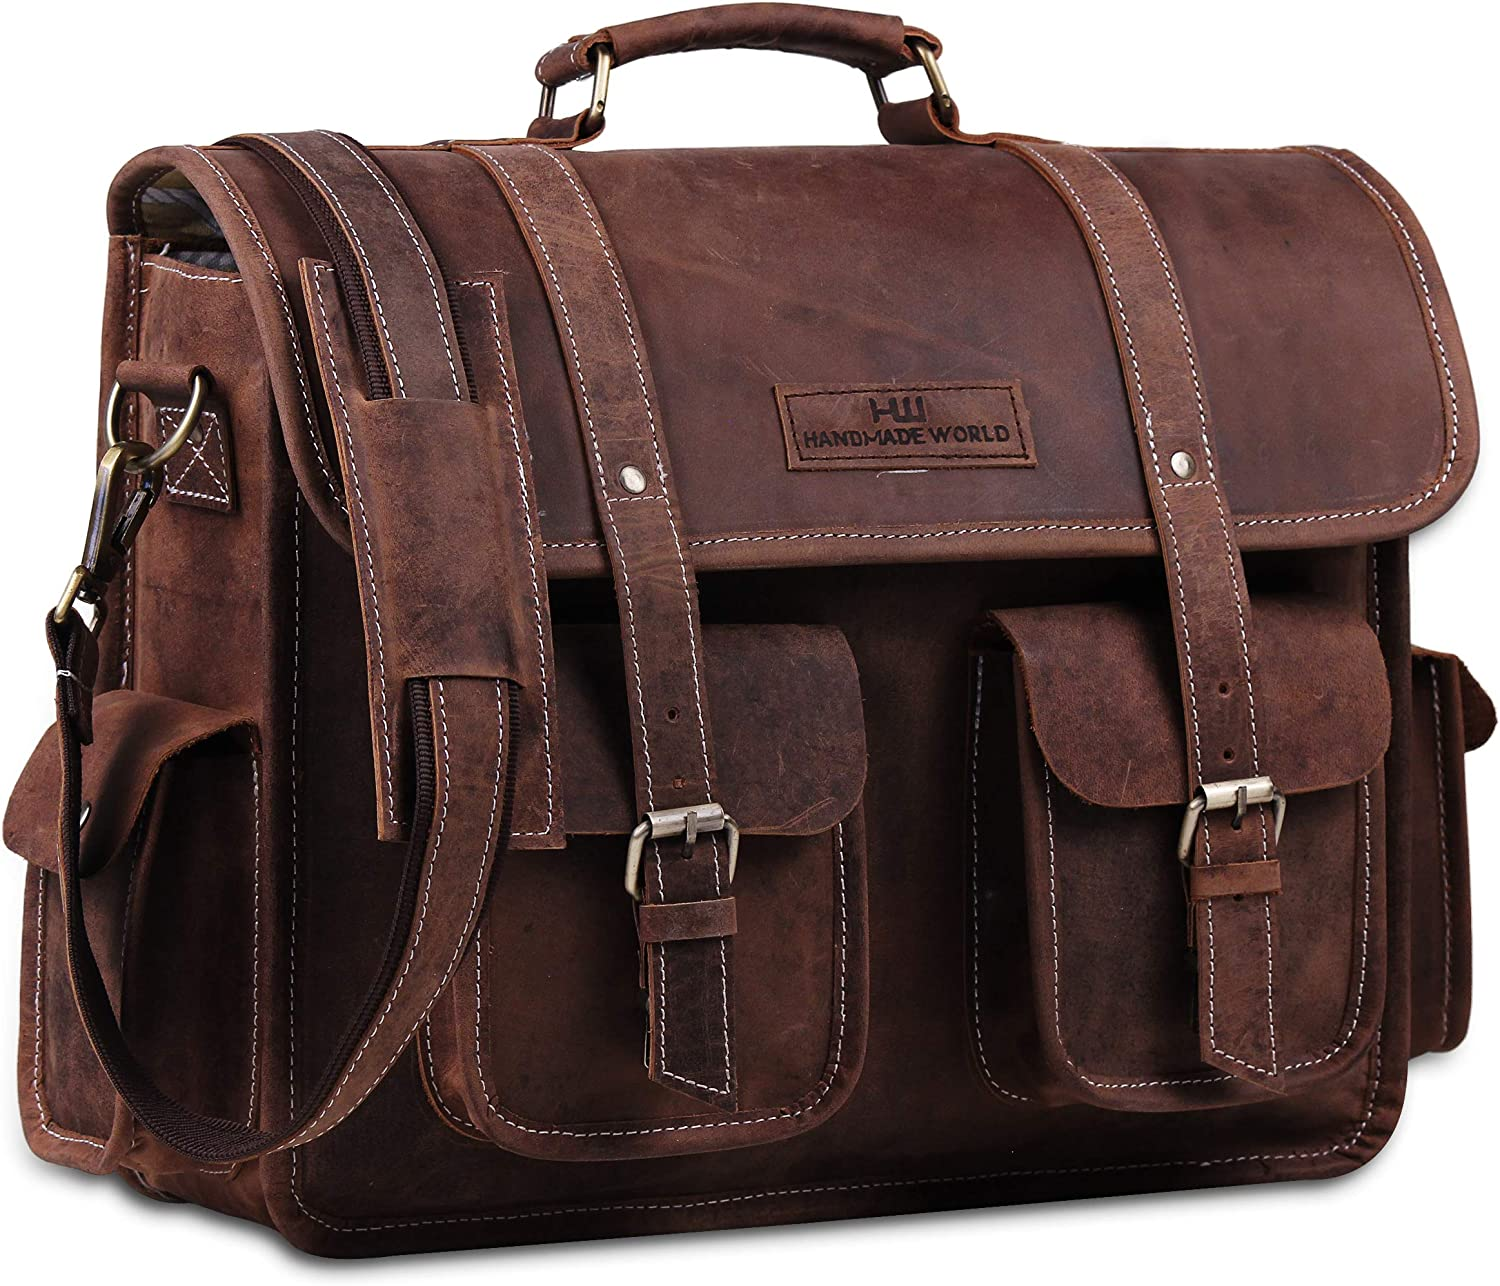 Handmade World 16 Ranking Spasm price TOP18 Inch Buffalo Office Messenger Bag Leather For